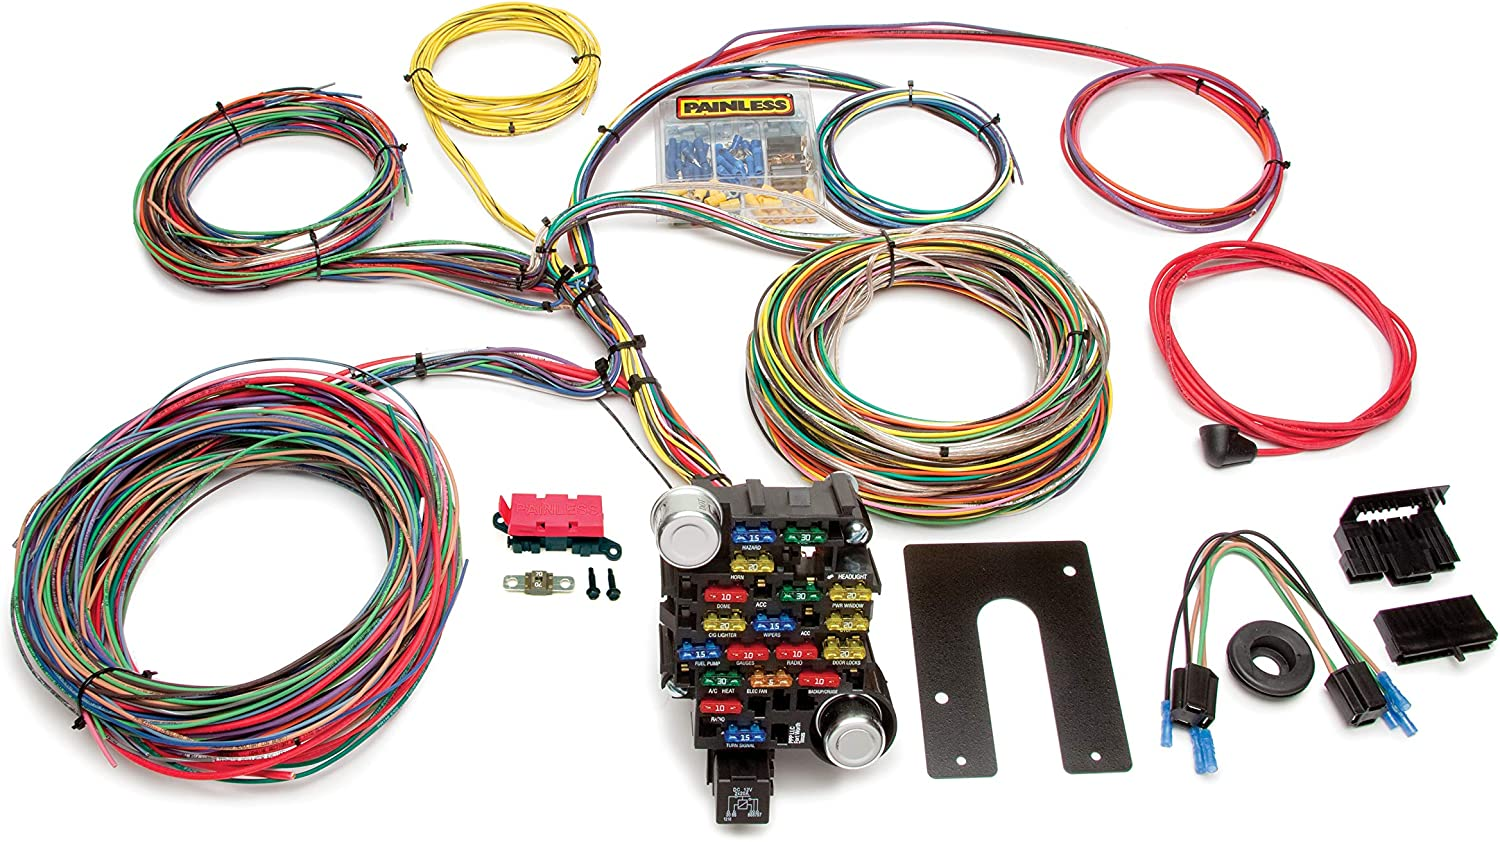 [SCHEMATICS_4US]  Amazon.com: Painless Performance 10202 Classic-Plus Customizable Chassis  Harness, Key in Dash, 28 Circuits: Automotive | Wiring Diagram Painless Harness Electrical Source |  | Amazon.com